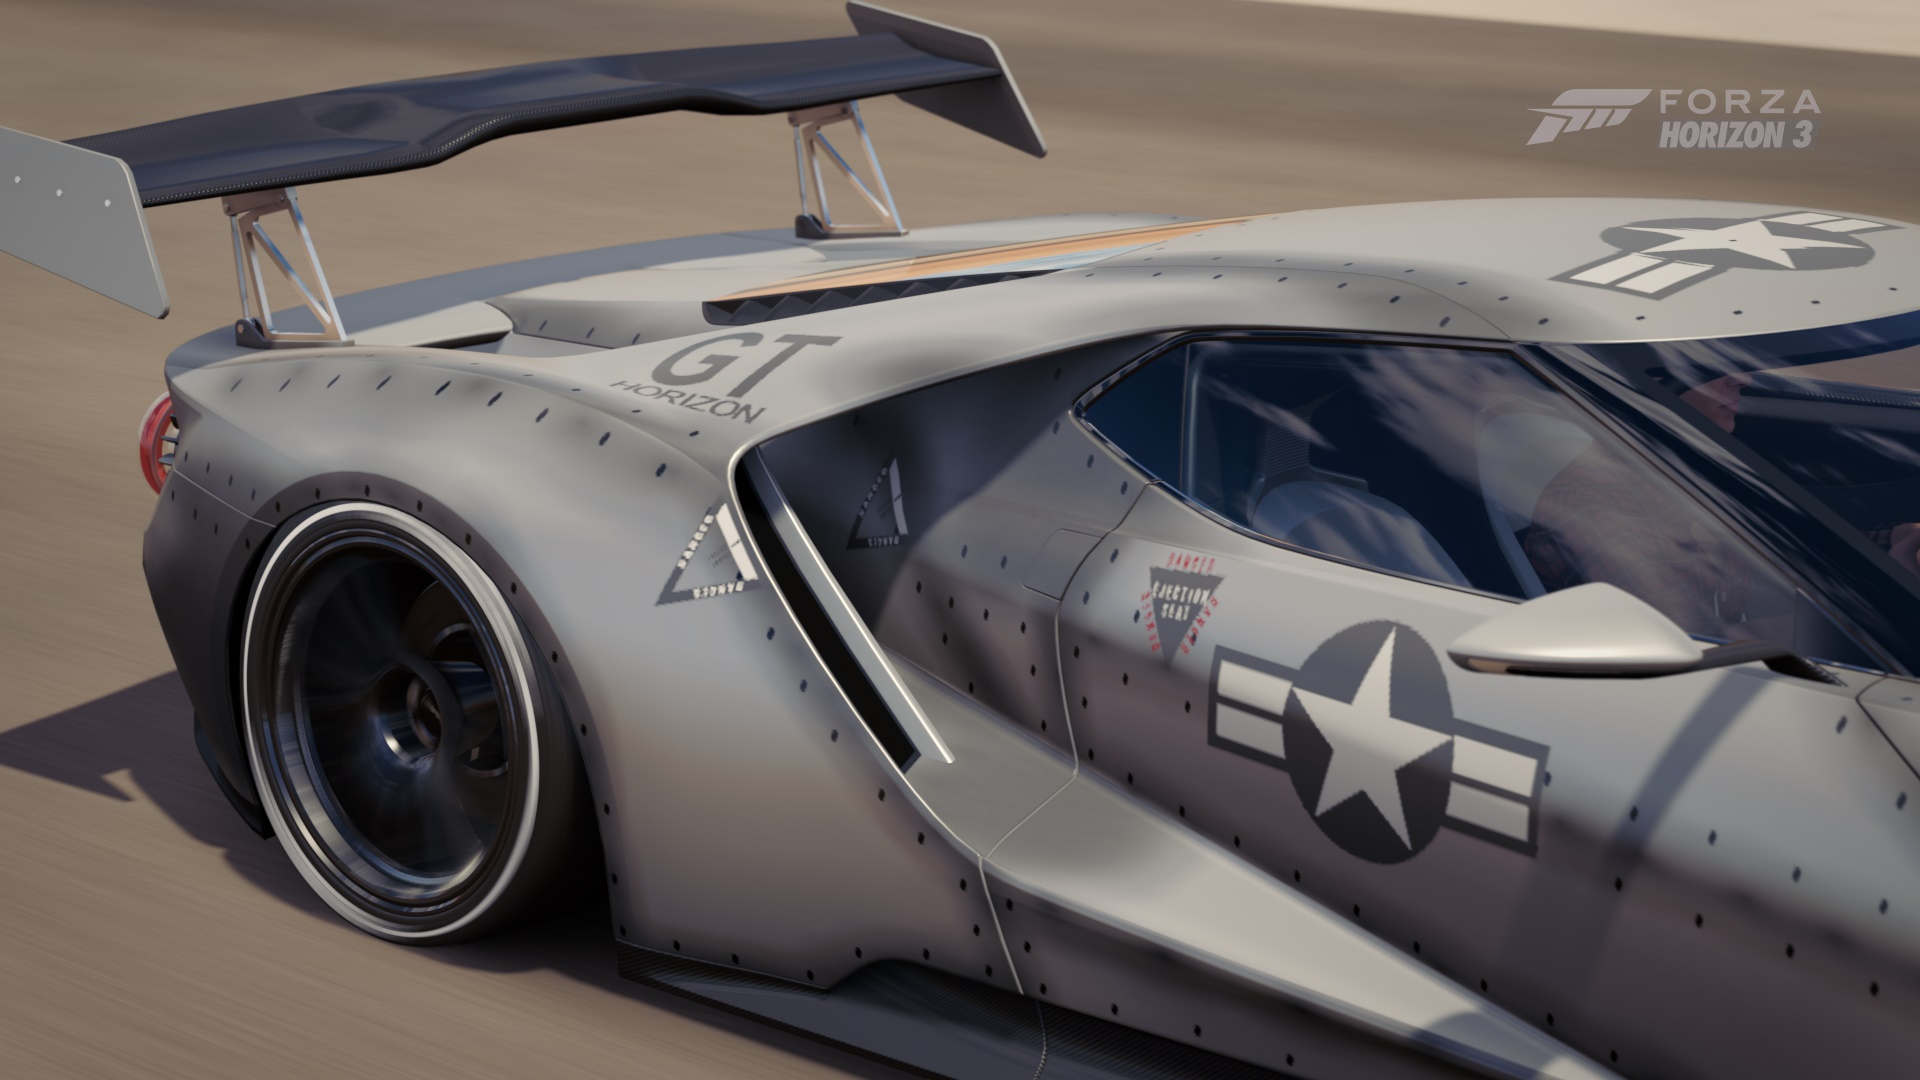 Made A Fighter Jet Livery Trying My Hand At Creating